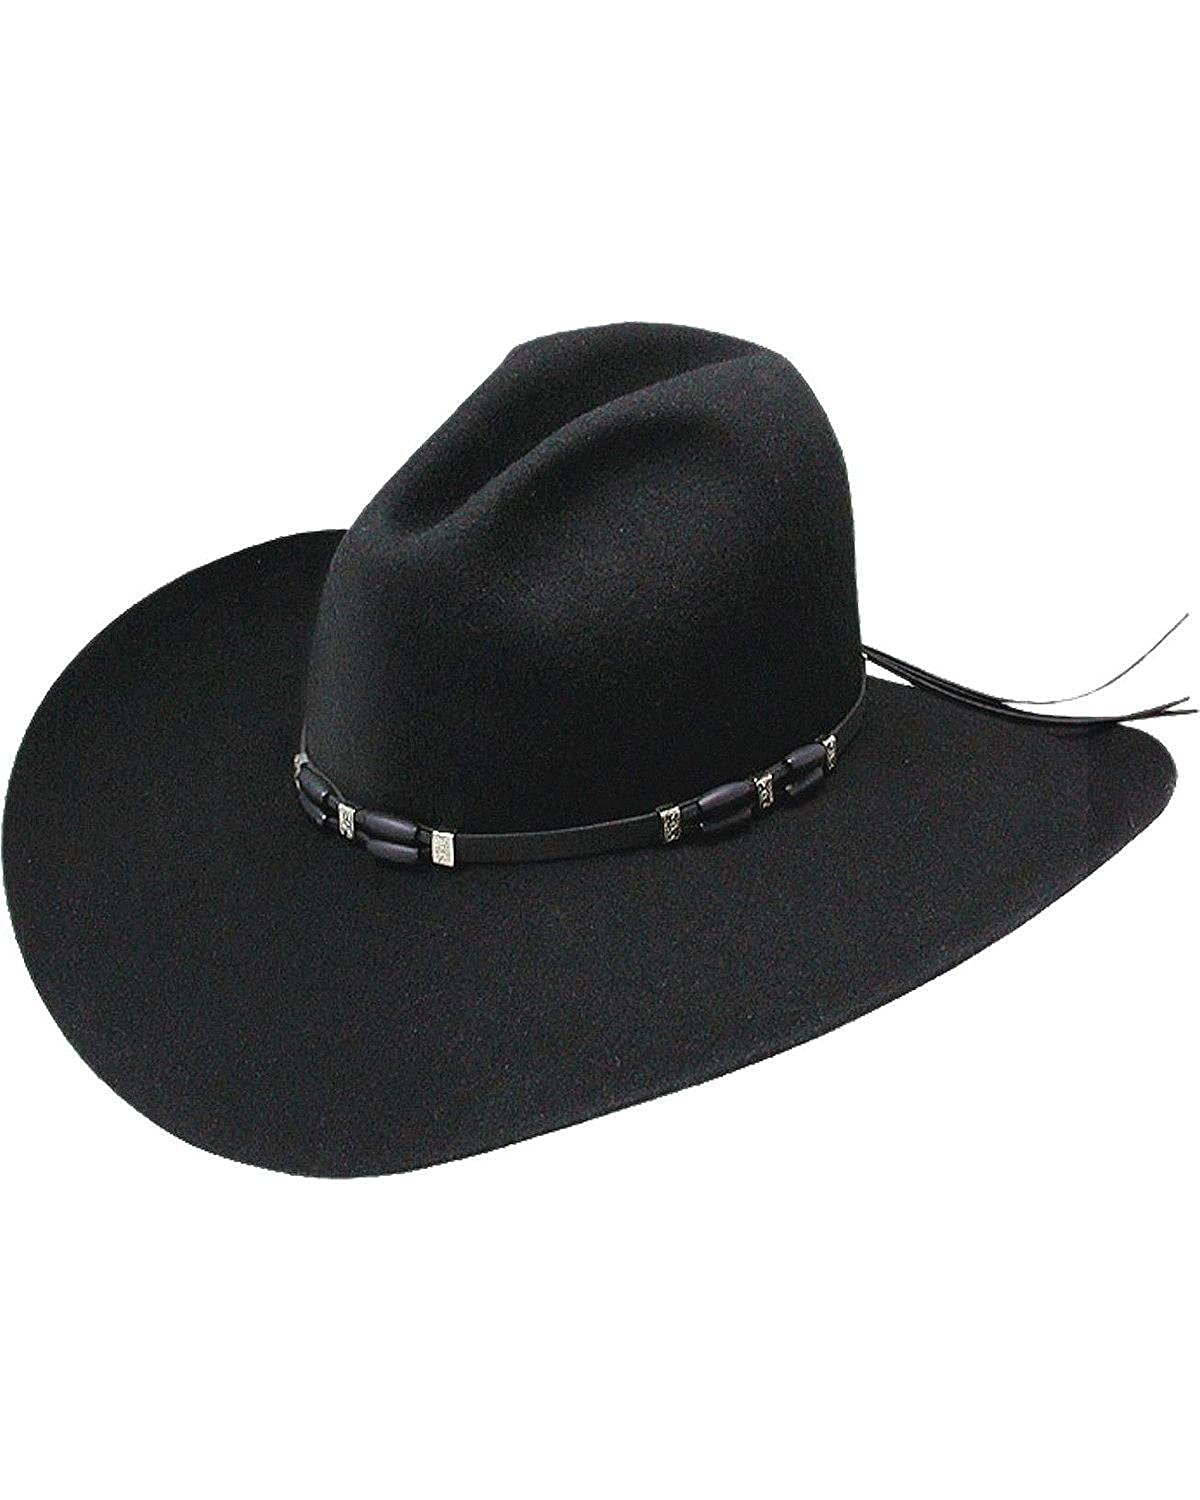 f0e030876 Resistol Men's 2X Cisco Felt Cowboy Hat